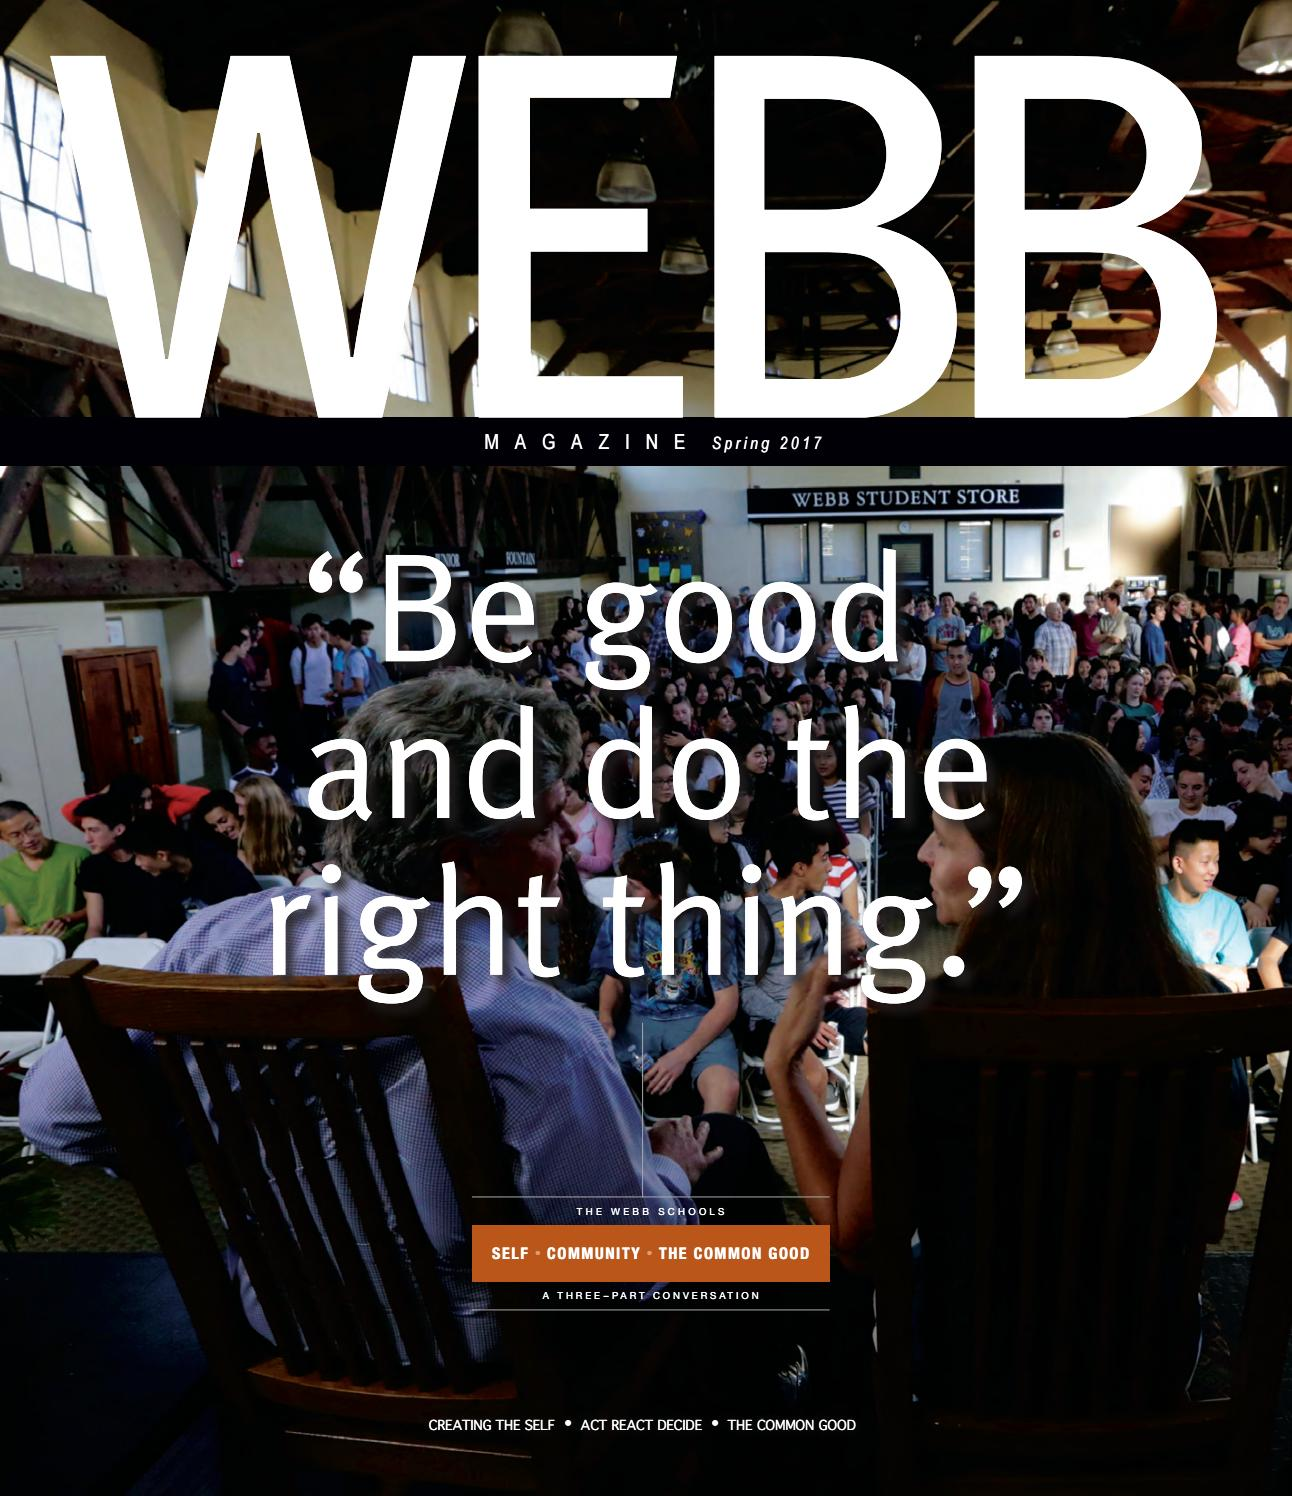 WEBB Magazine Spring 2017 by The Webb Schools - issuu 16004955fa2d